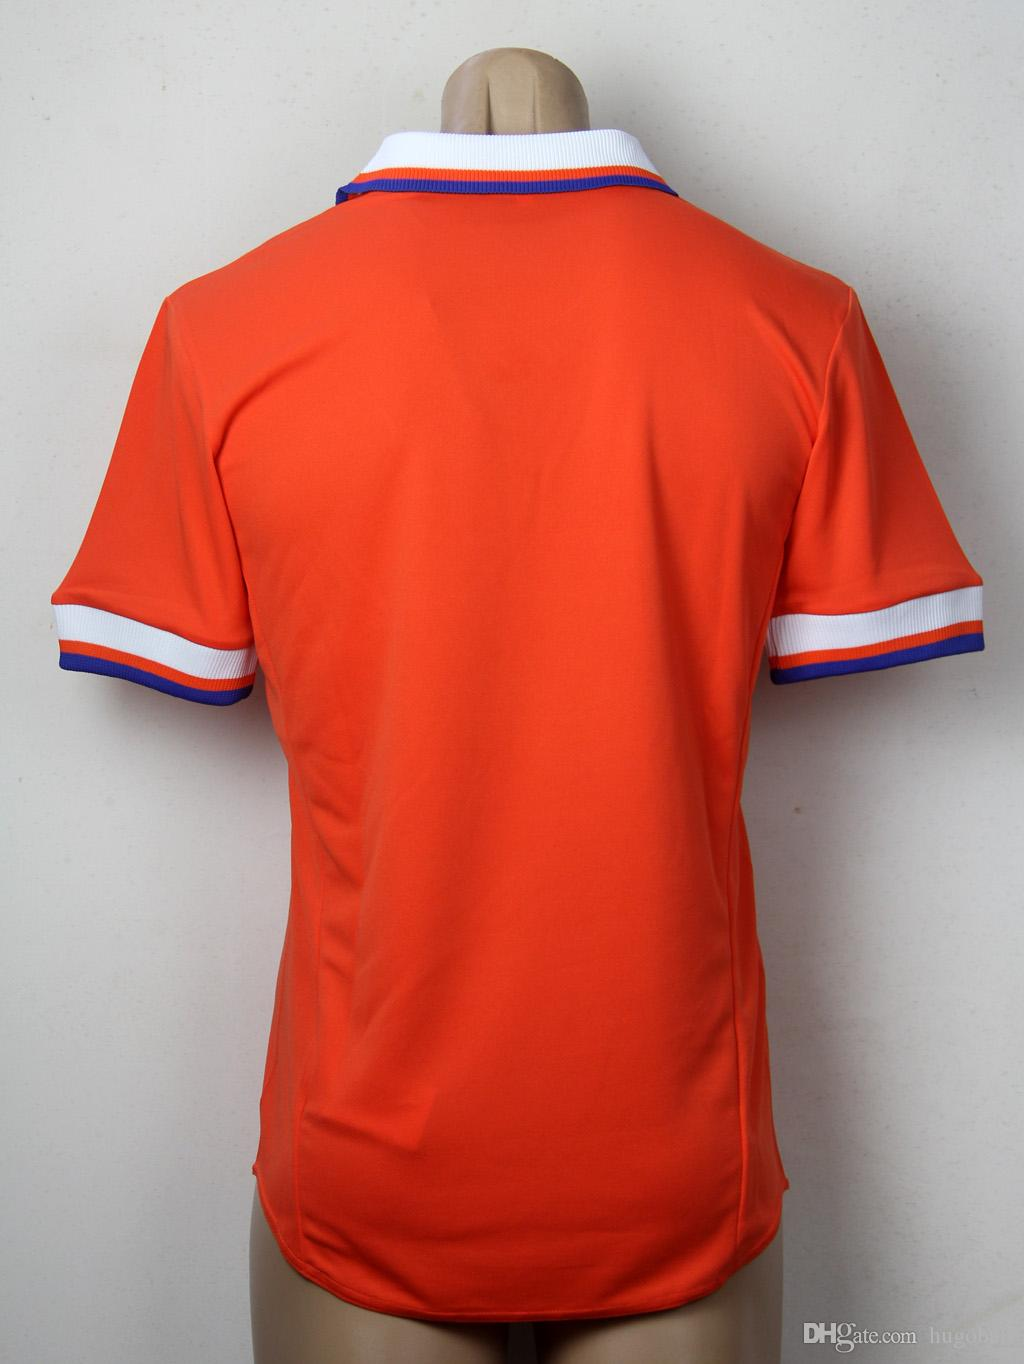 Retro Jersey 1997 98 Netherlands Home Orange Commemorative Edition Soccer  Jerseys BEST Quality Holland Football Shirt UK 2019 From Hugoball dcaa3a84d